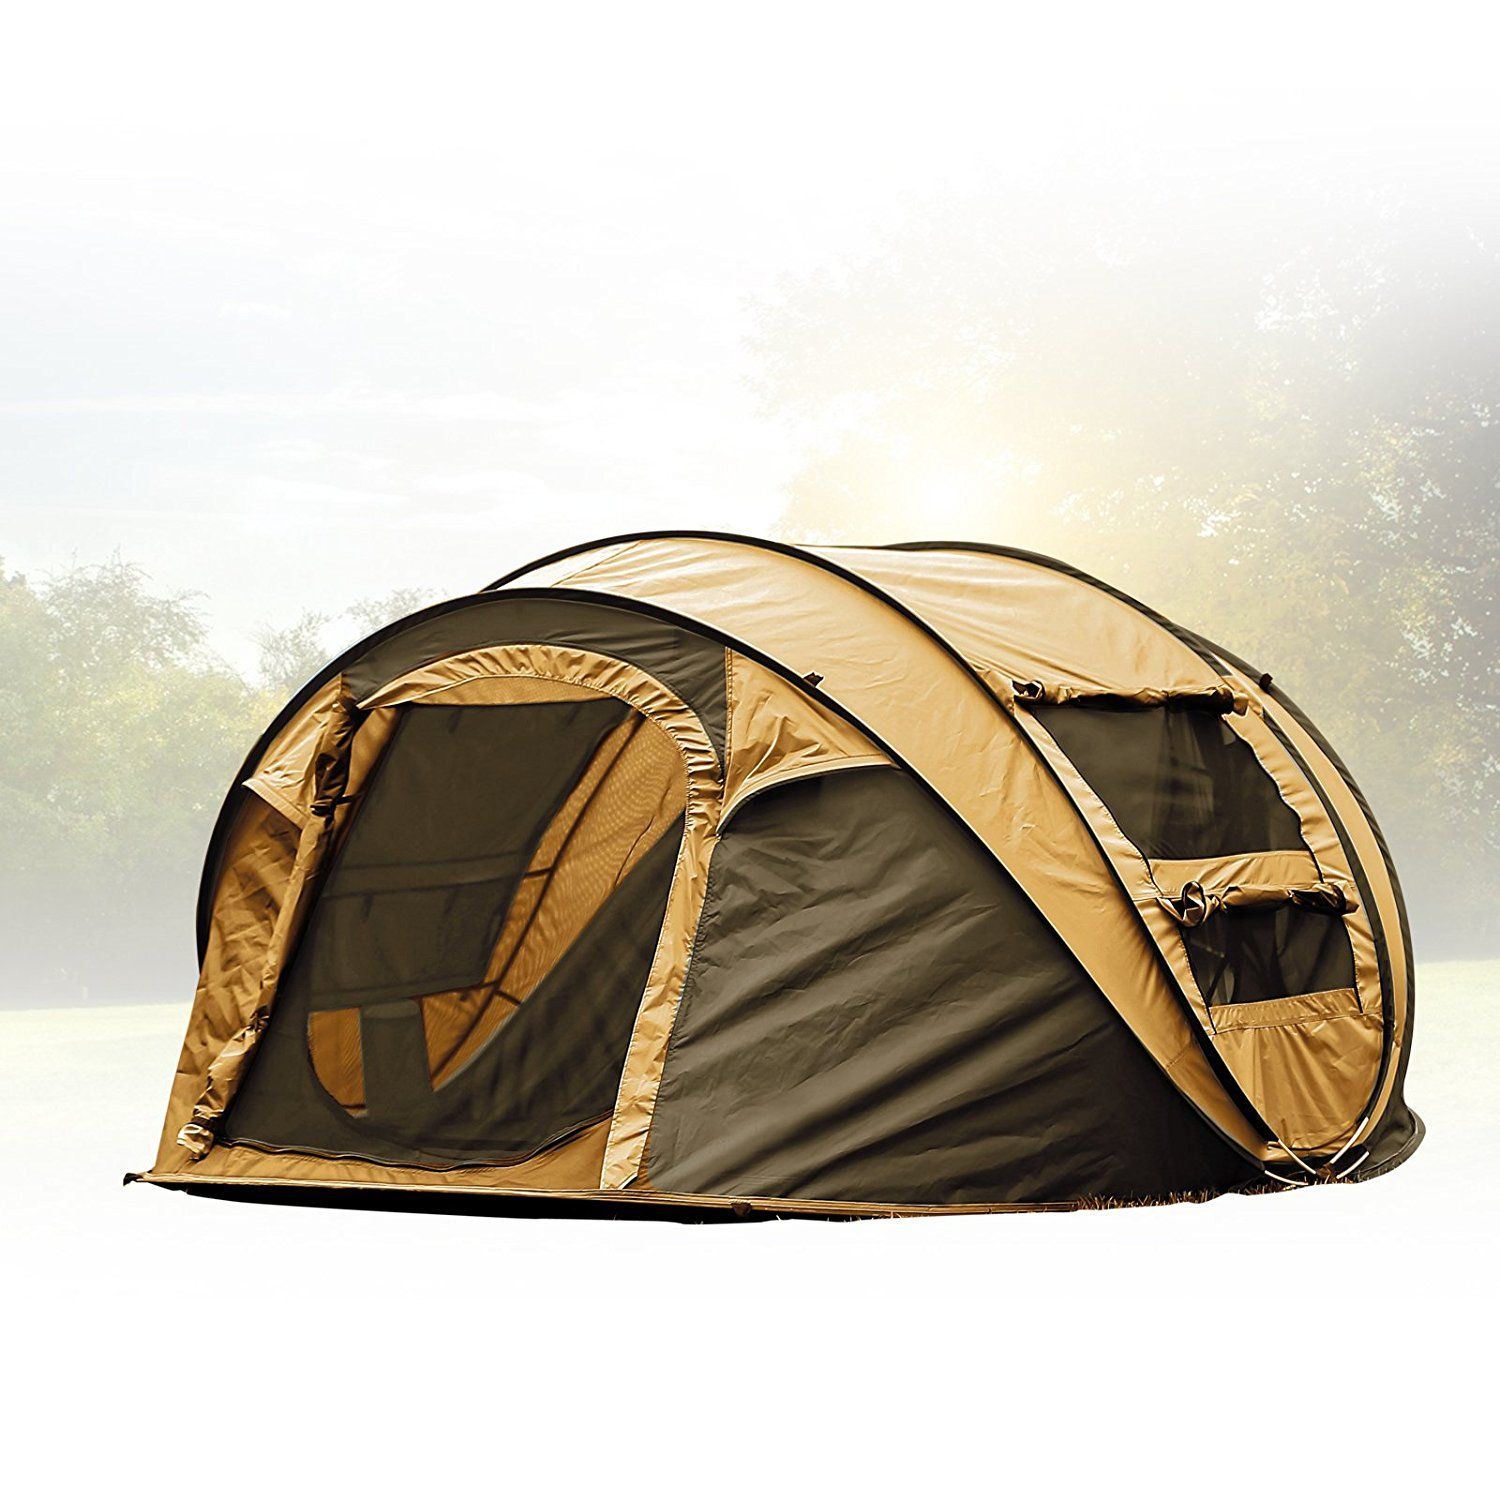 Camouflage Pop Up Camping Hiking Tent Easy Setup Instant Tent